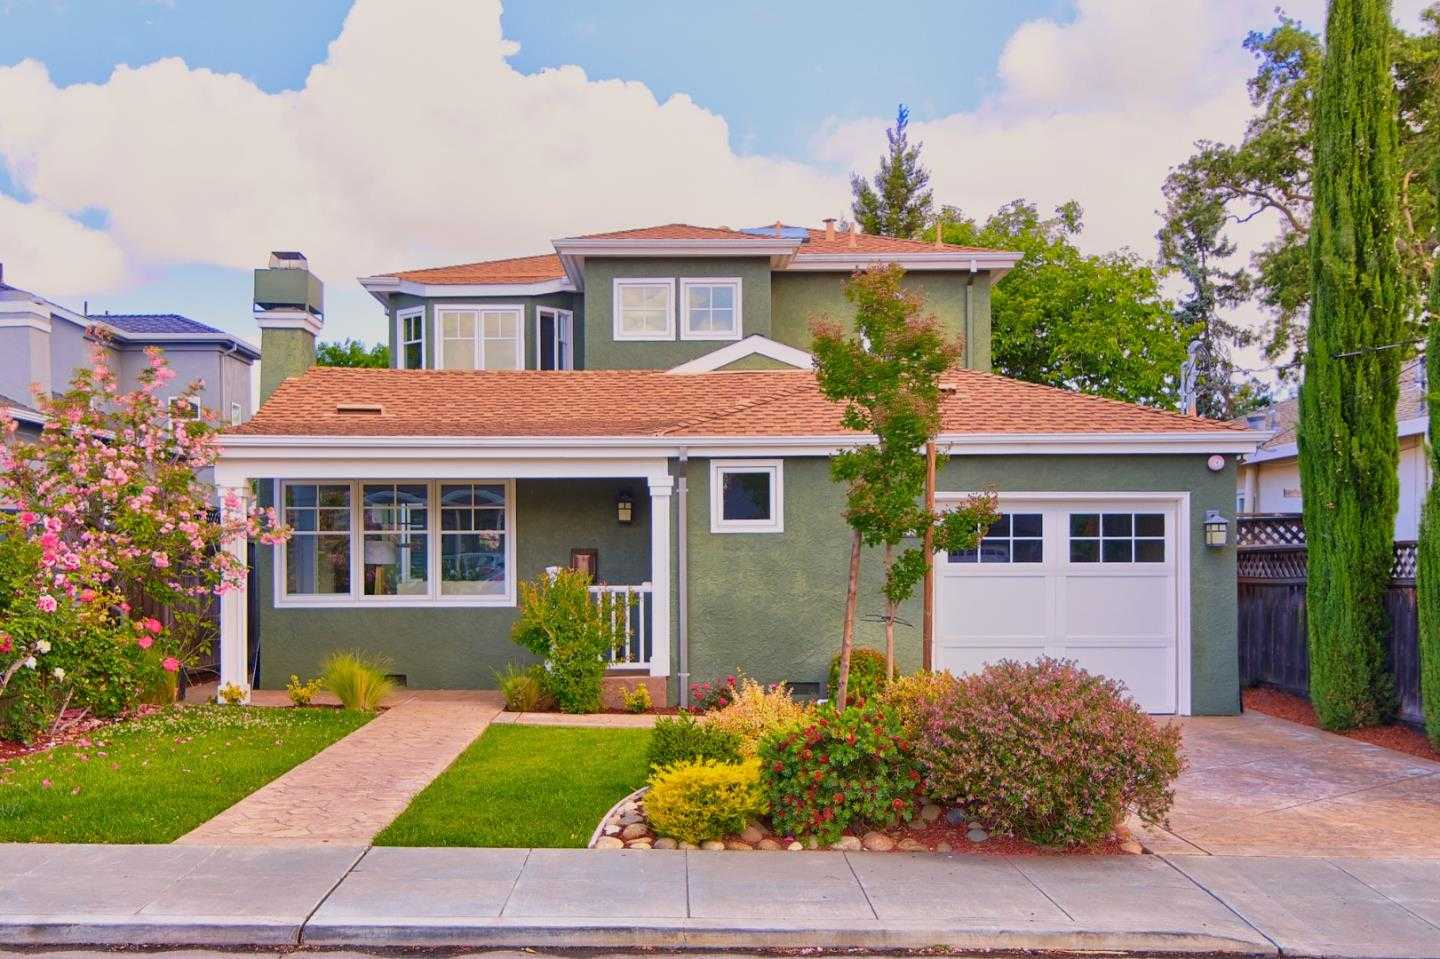 $2,789,000 - 4Br/3Ba -  for Sale in San Carlos